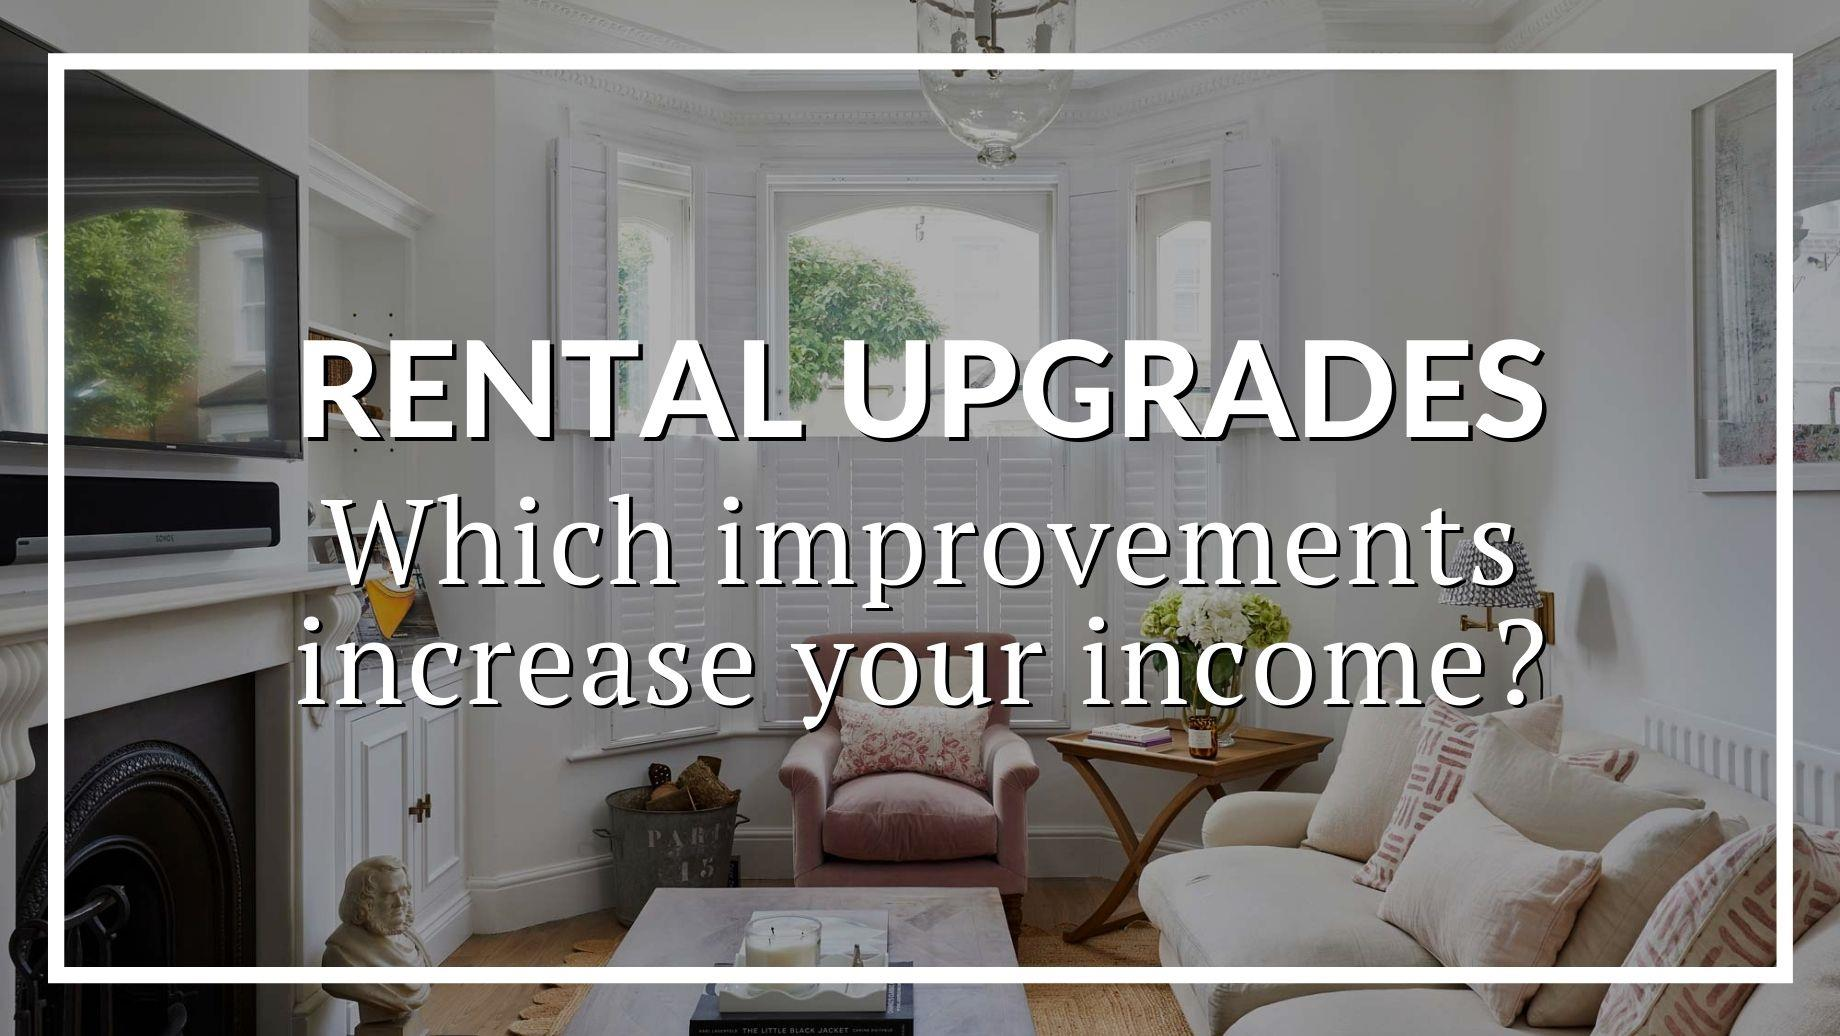 RENTAL UPGRADES: FIVE IMPROVEMENTS TO INCREASE YOUR INCOME